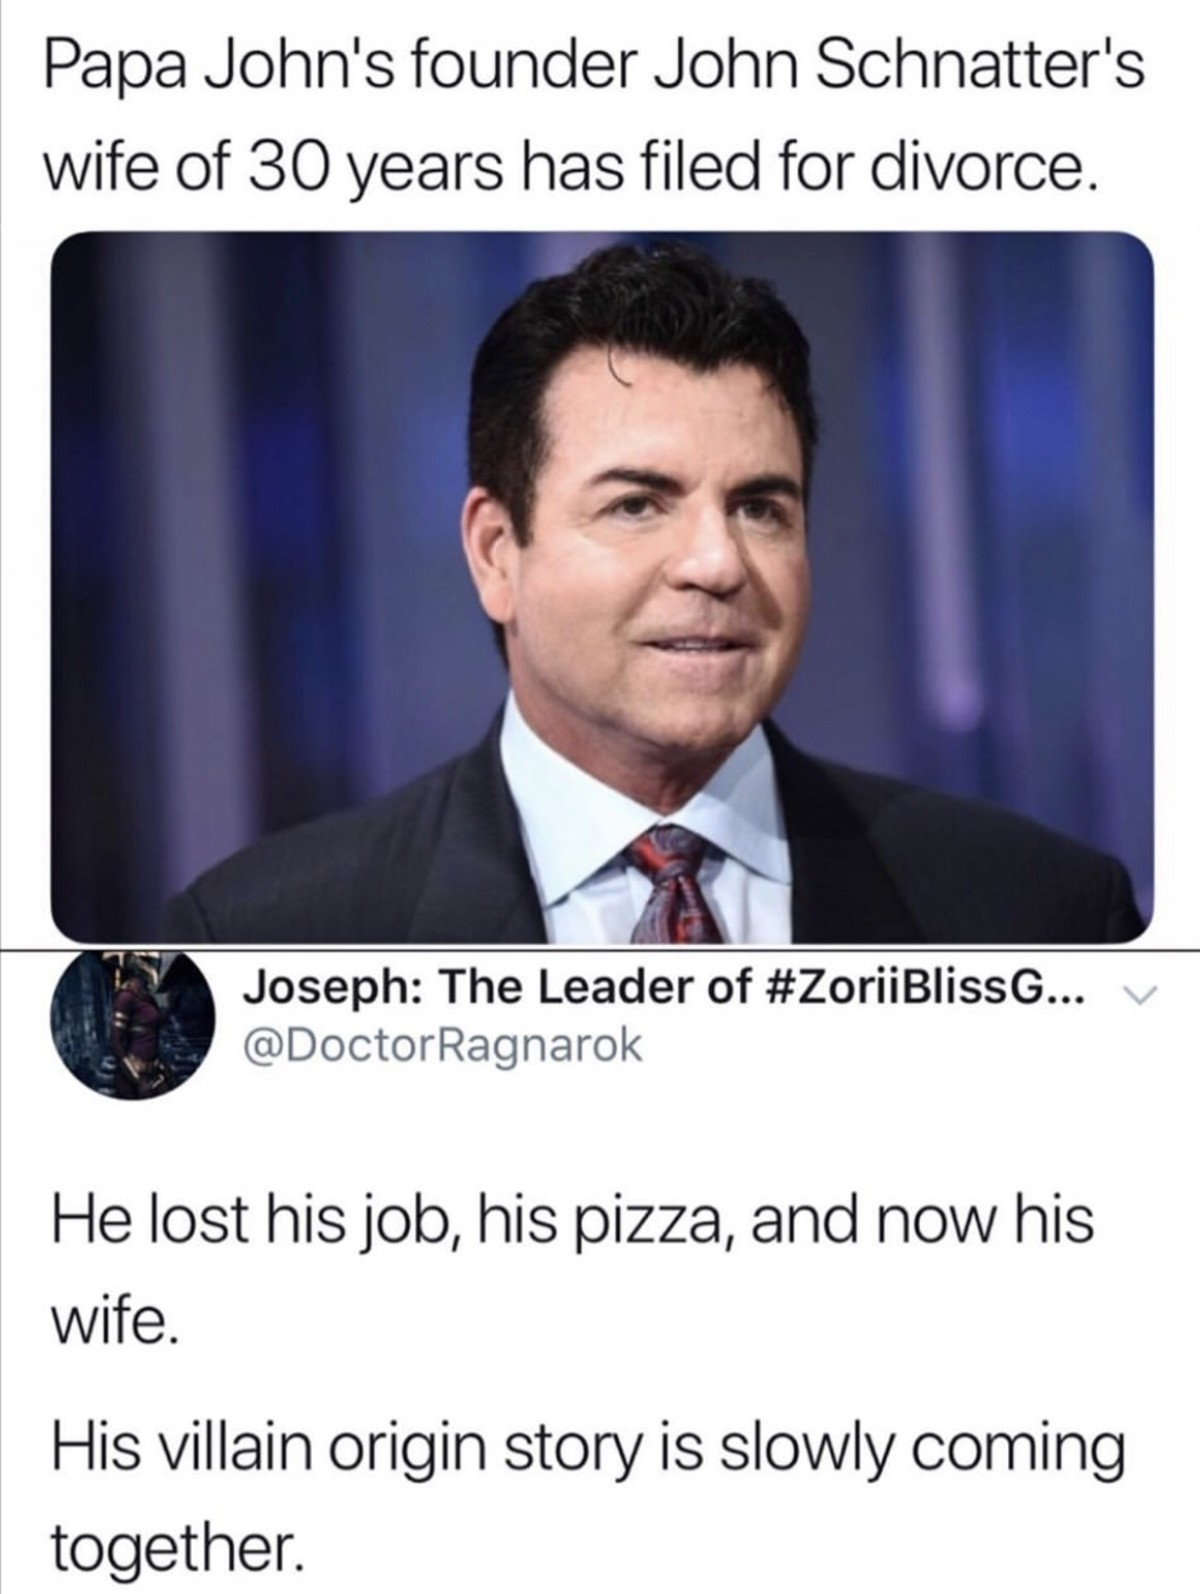 Papa Bless. .. And all for reasonable political opinions and for having said a slur that was taken out of context. I'd feel terrible for him if he didn't have enough money to